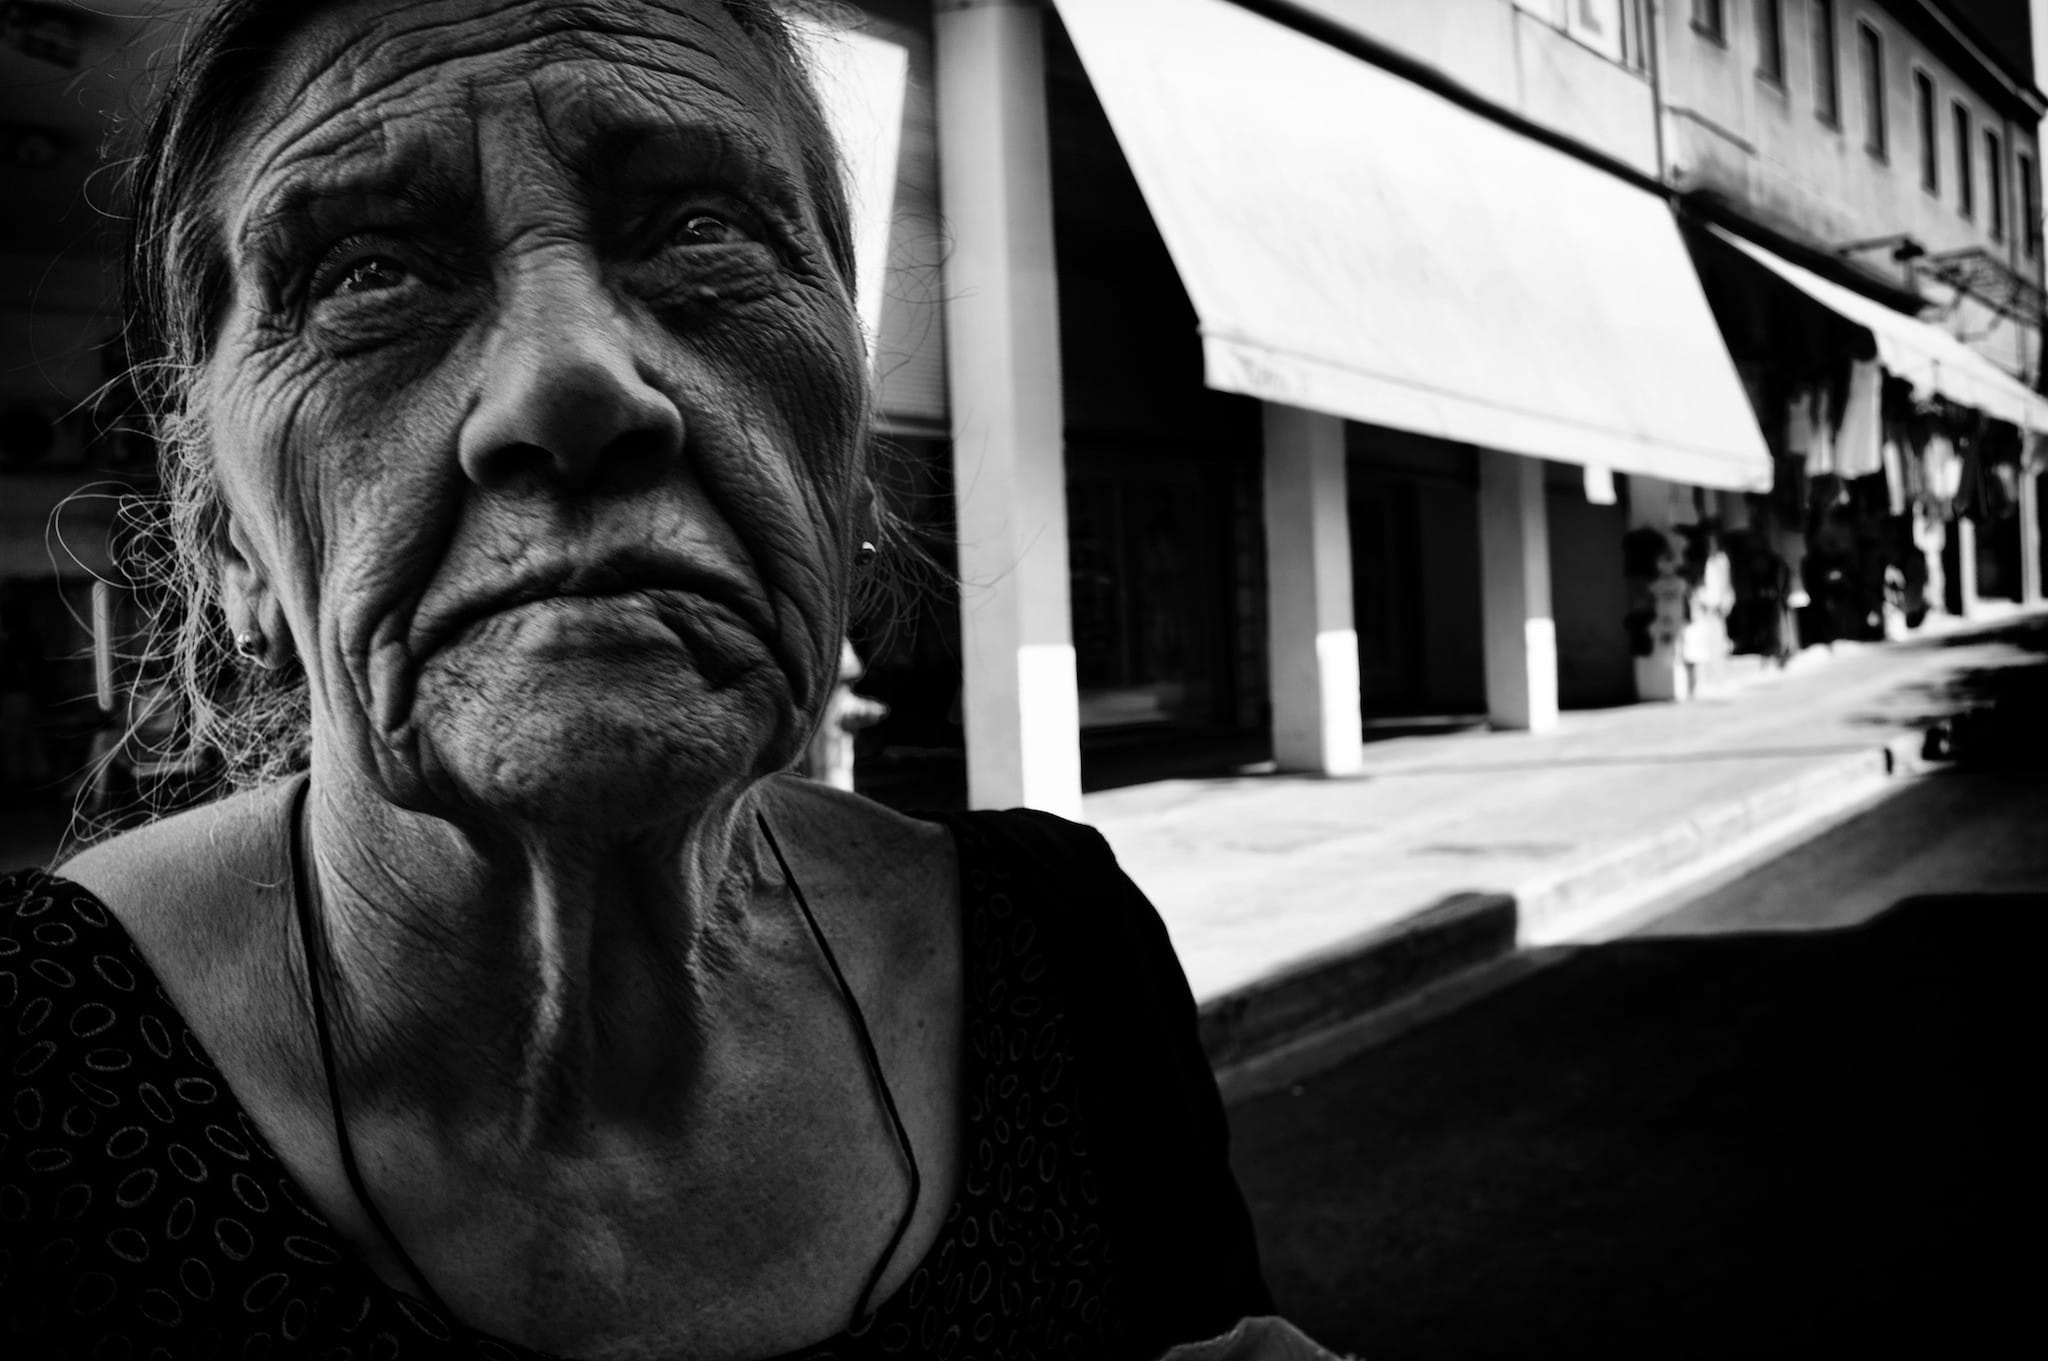 Posed Street Portraits vs Candid Street Portraits in Street Photography